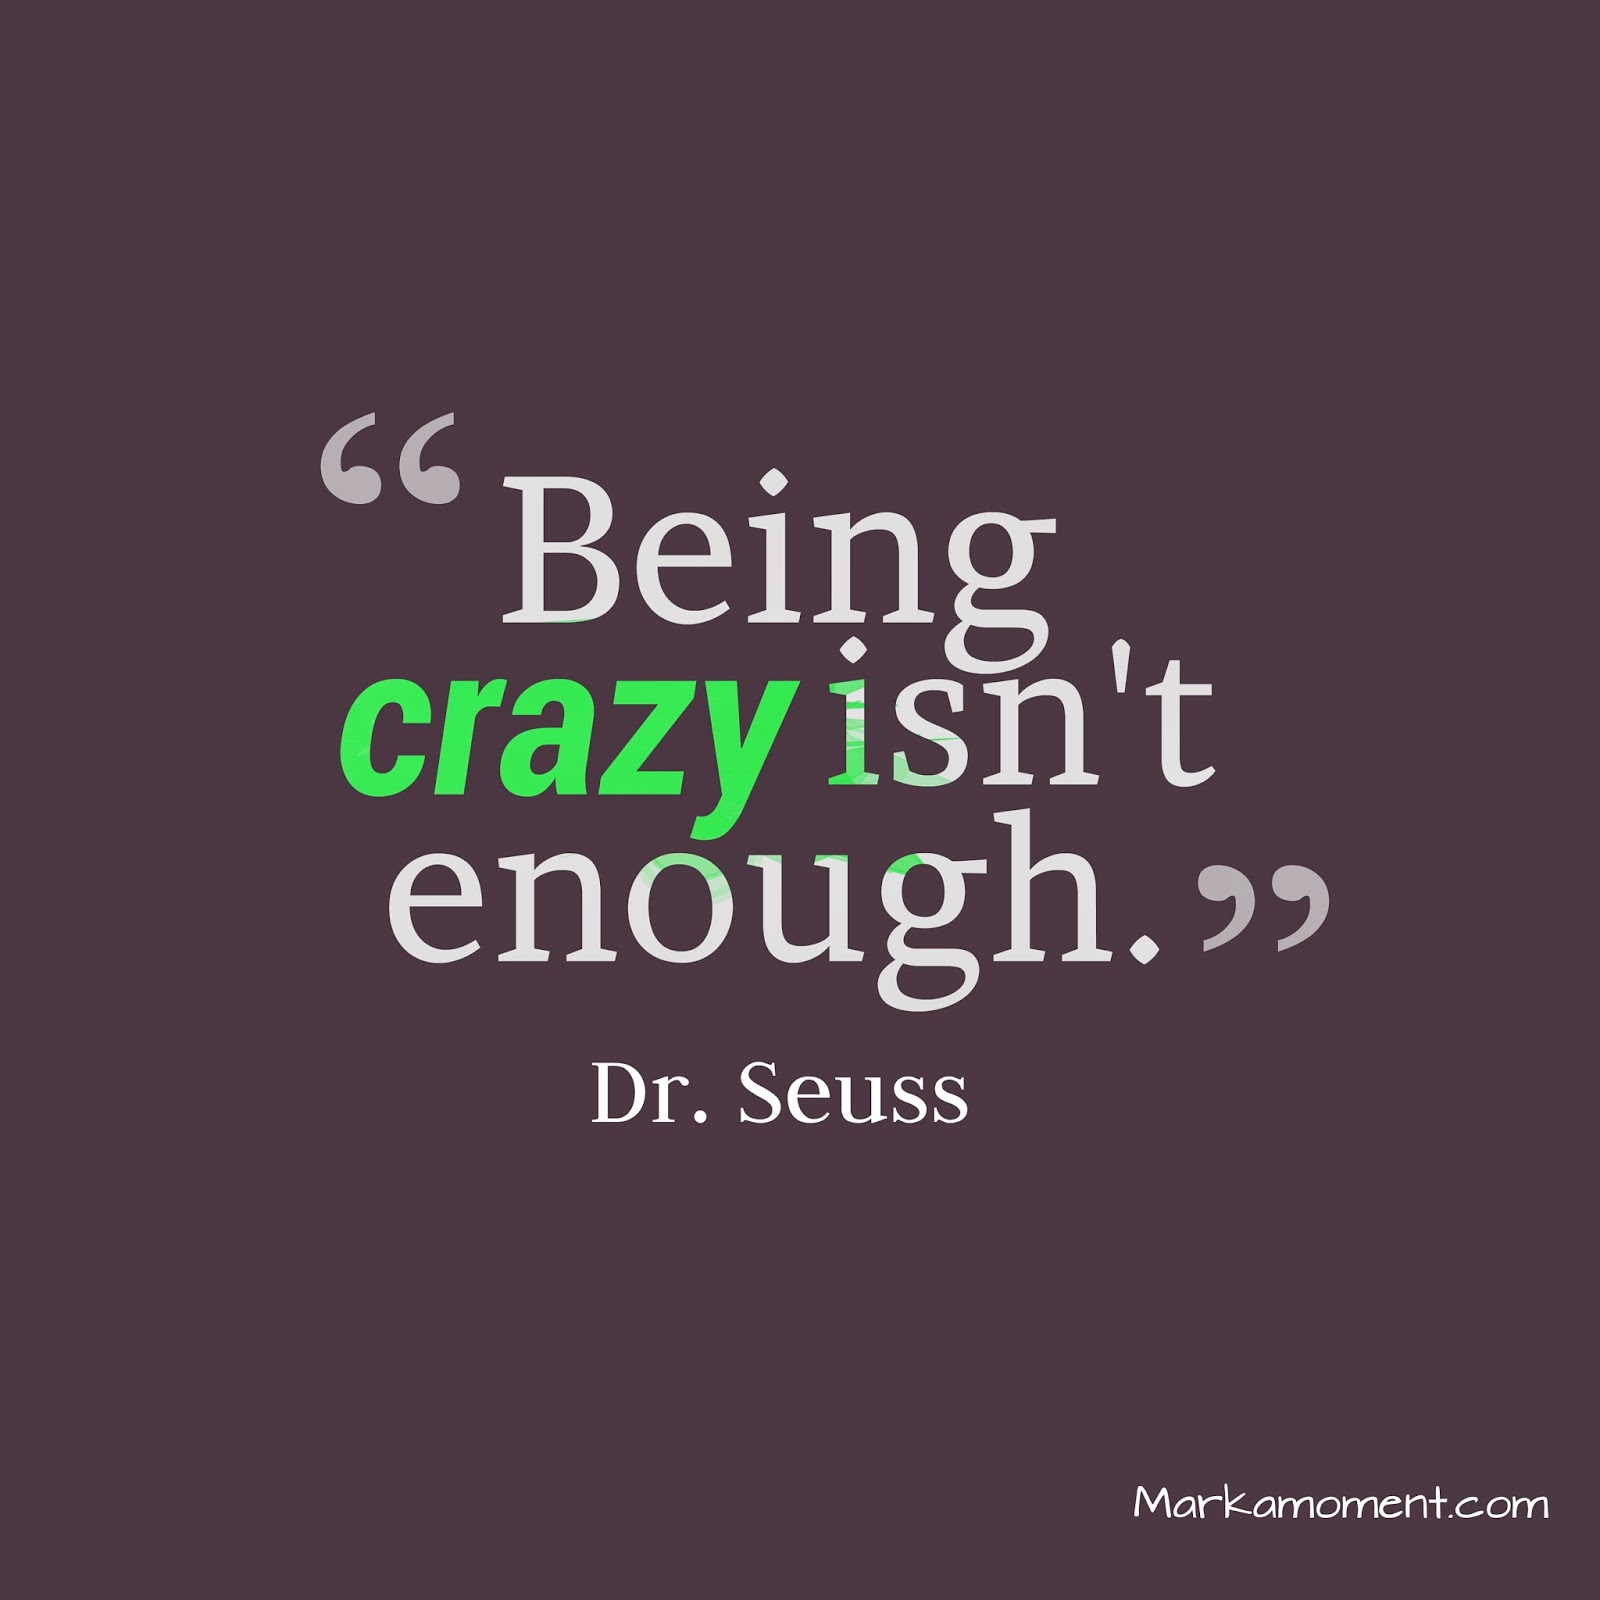 Dr.Seuss Quotes, Motivational Quotes 2014